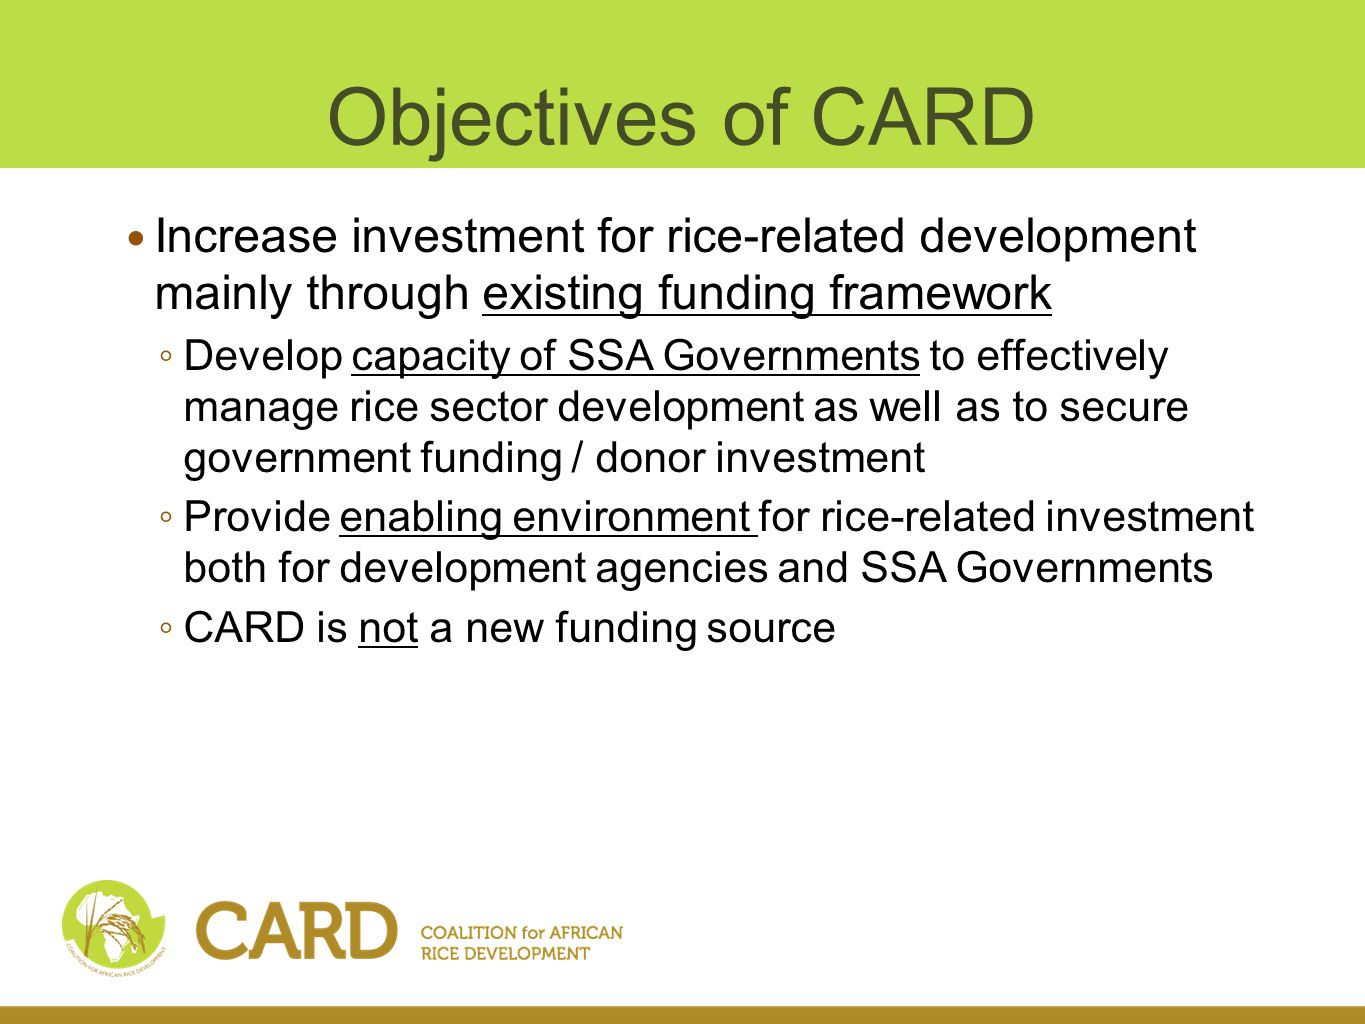 Objectives of CARD Increase investment for rice-related development mainly through existing funding framework Develop capacity of SSA Governments to effectively manage rice sector development as well as to secure government funding / donor investment Provide enabling environment for rice-related investment both for development agencies and SSA Governments CARD is not a new funding source